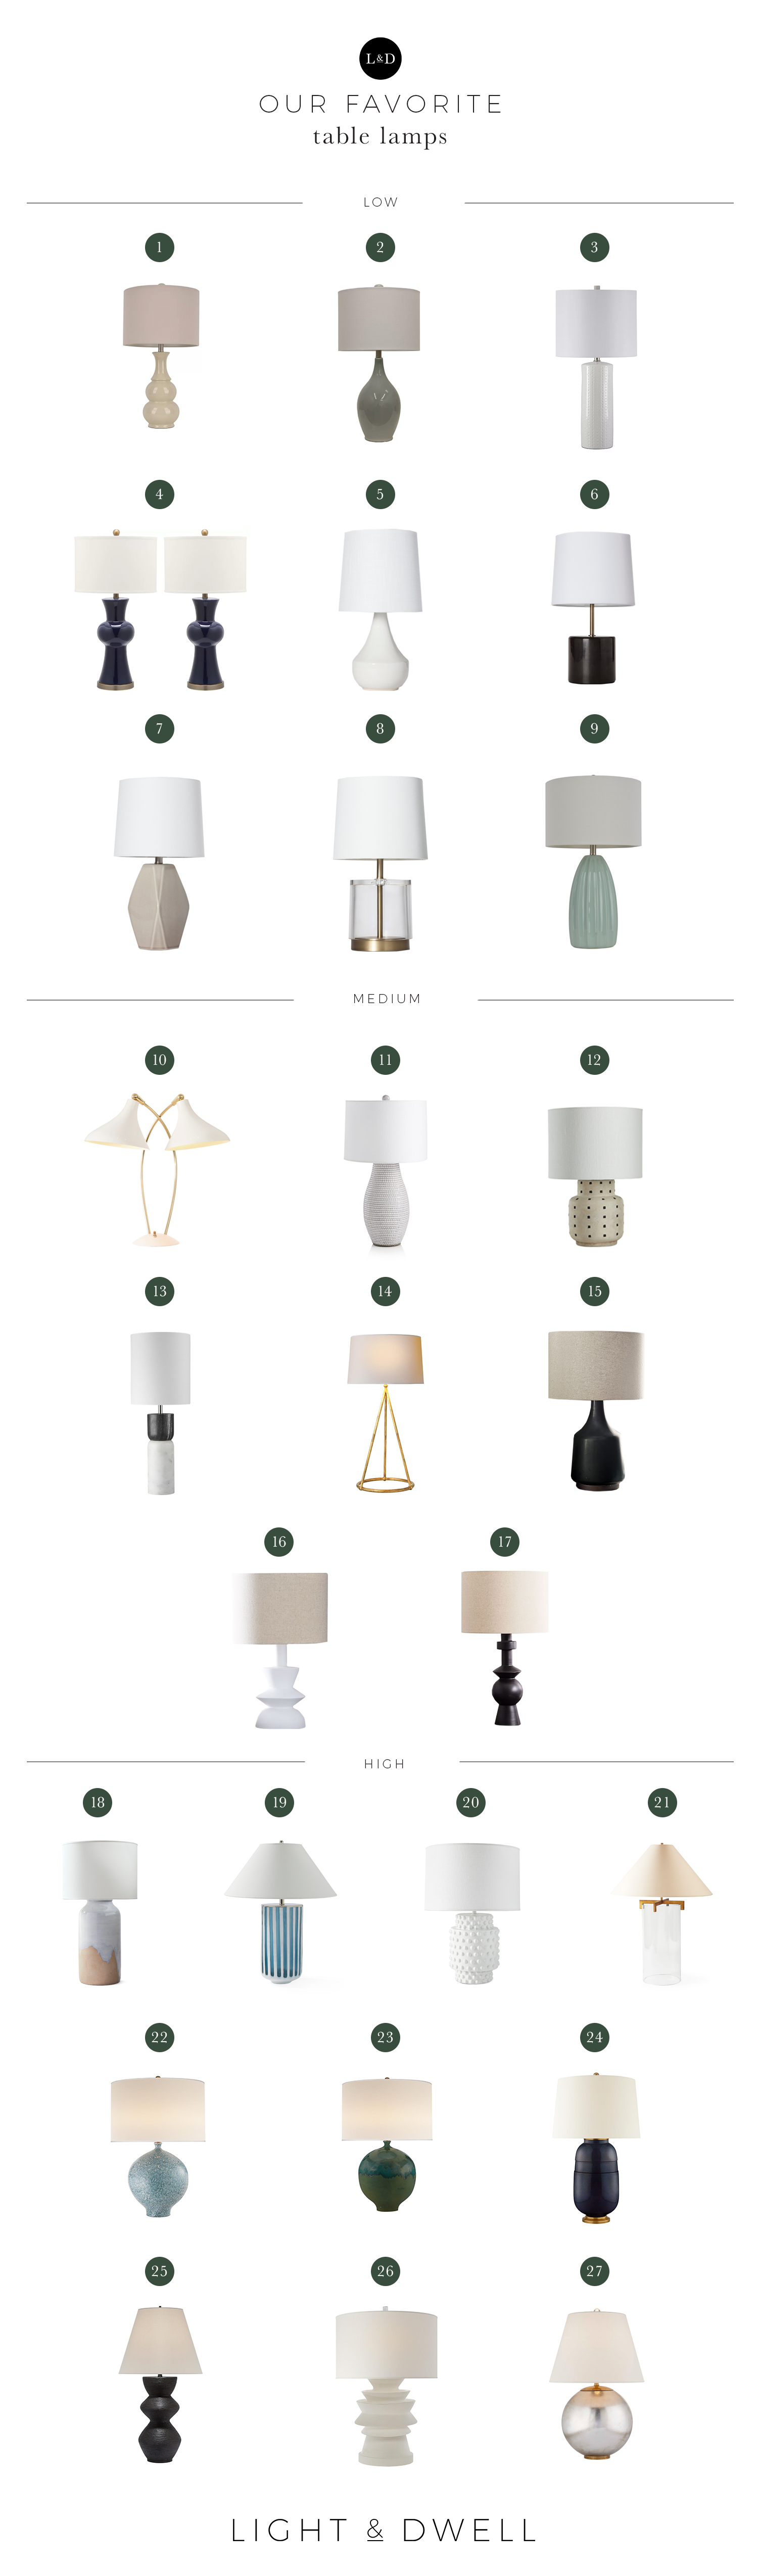 L+D_OurFavorite_TableLamps.png